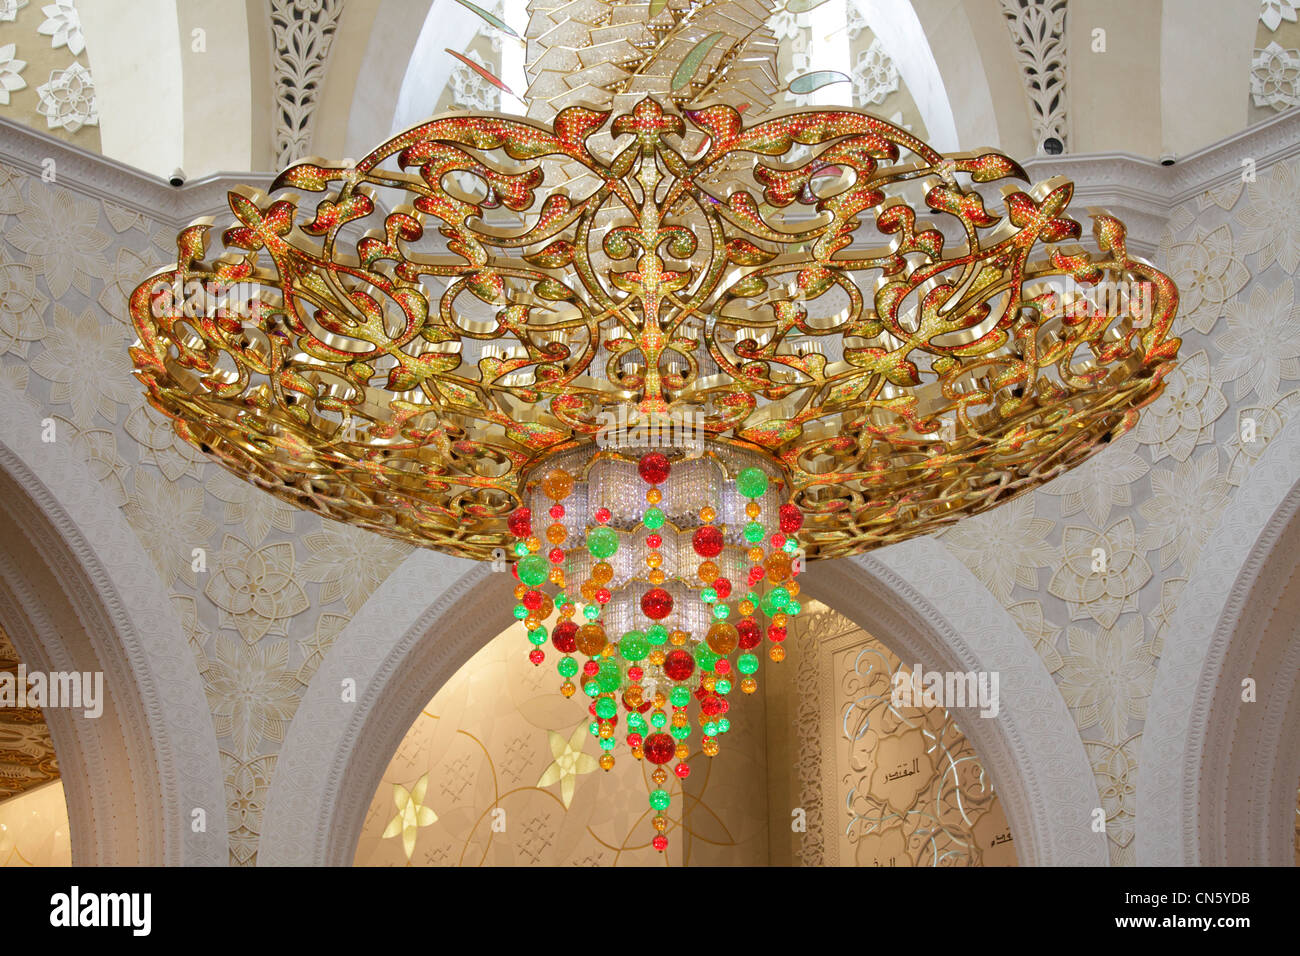 The imposing chandelier at Sheikh Zayed Grand Mosque, Abu Dhabi ...